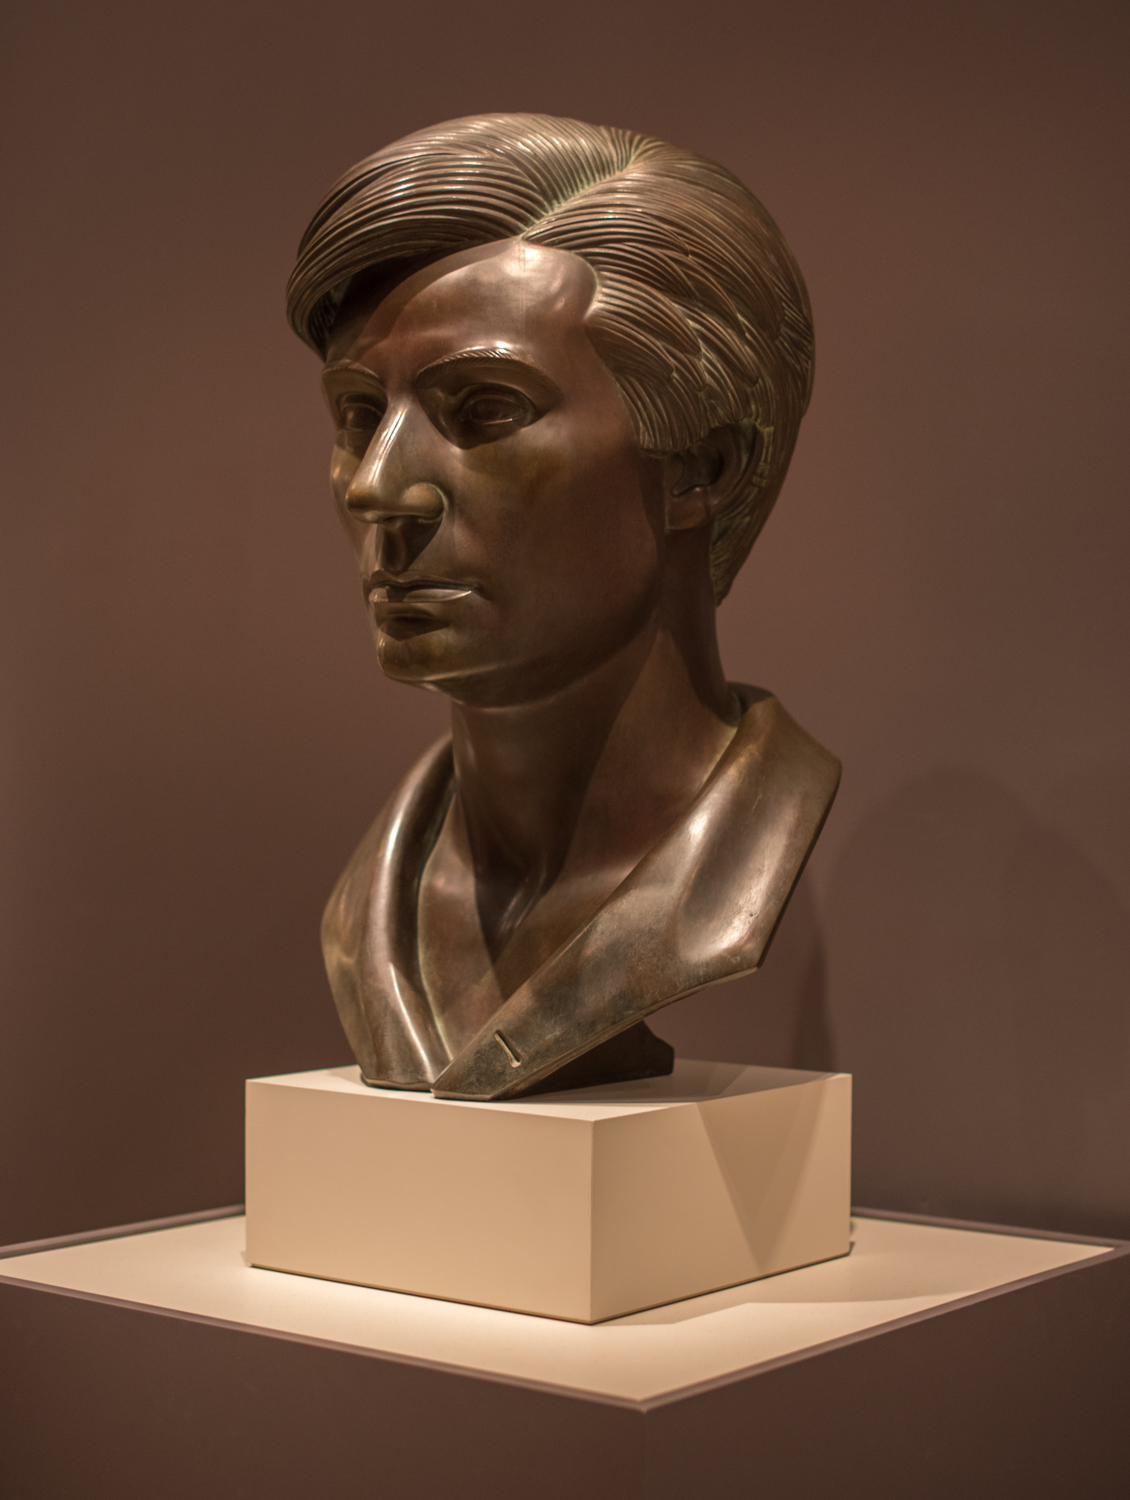 """Head of Abe Lincoln, the Hoosier Youth, about 1932, Paul Manship (1885-1966), Bronze. """"Representations of Abraham Lincoln abounded throughout the Great Depression, elevating the former president as a champion of the common man. The image of him as a hearty youth full of promise was the most popular. This large sculpted portrait by Paul Manship was commissioned for the Lincoln Life Insurance Company in Fort Wayne, Indiana. Responding to the wishes of his clients, Manship portrayed a young Lincoln. The artist imagined his subject at age 21, creating this image using the smooth modeling and simplified forms of Art Deco."""""""